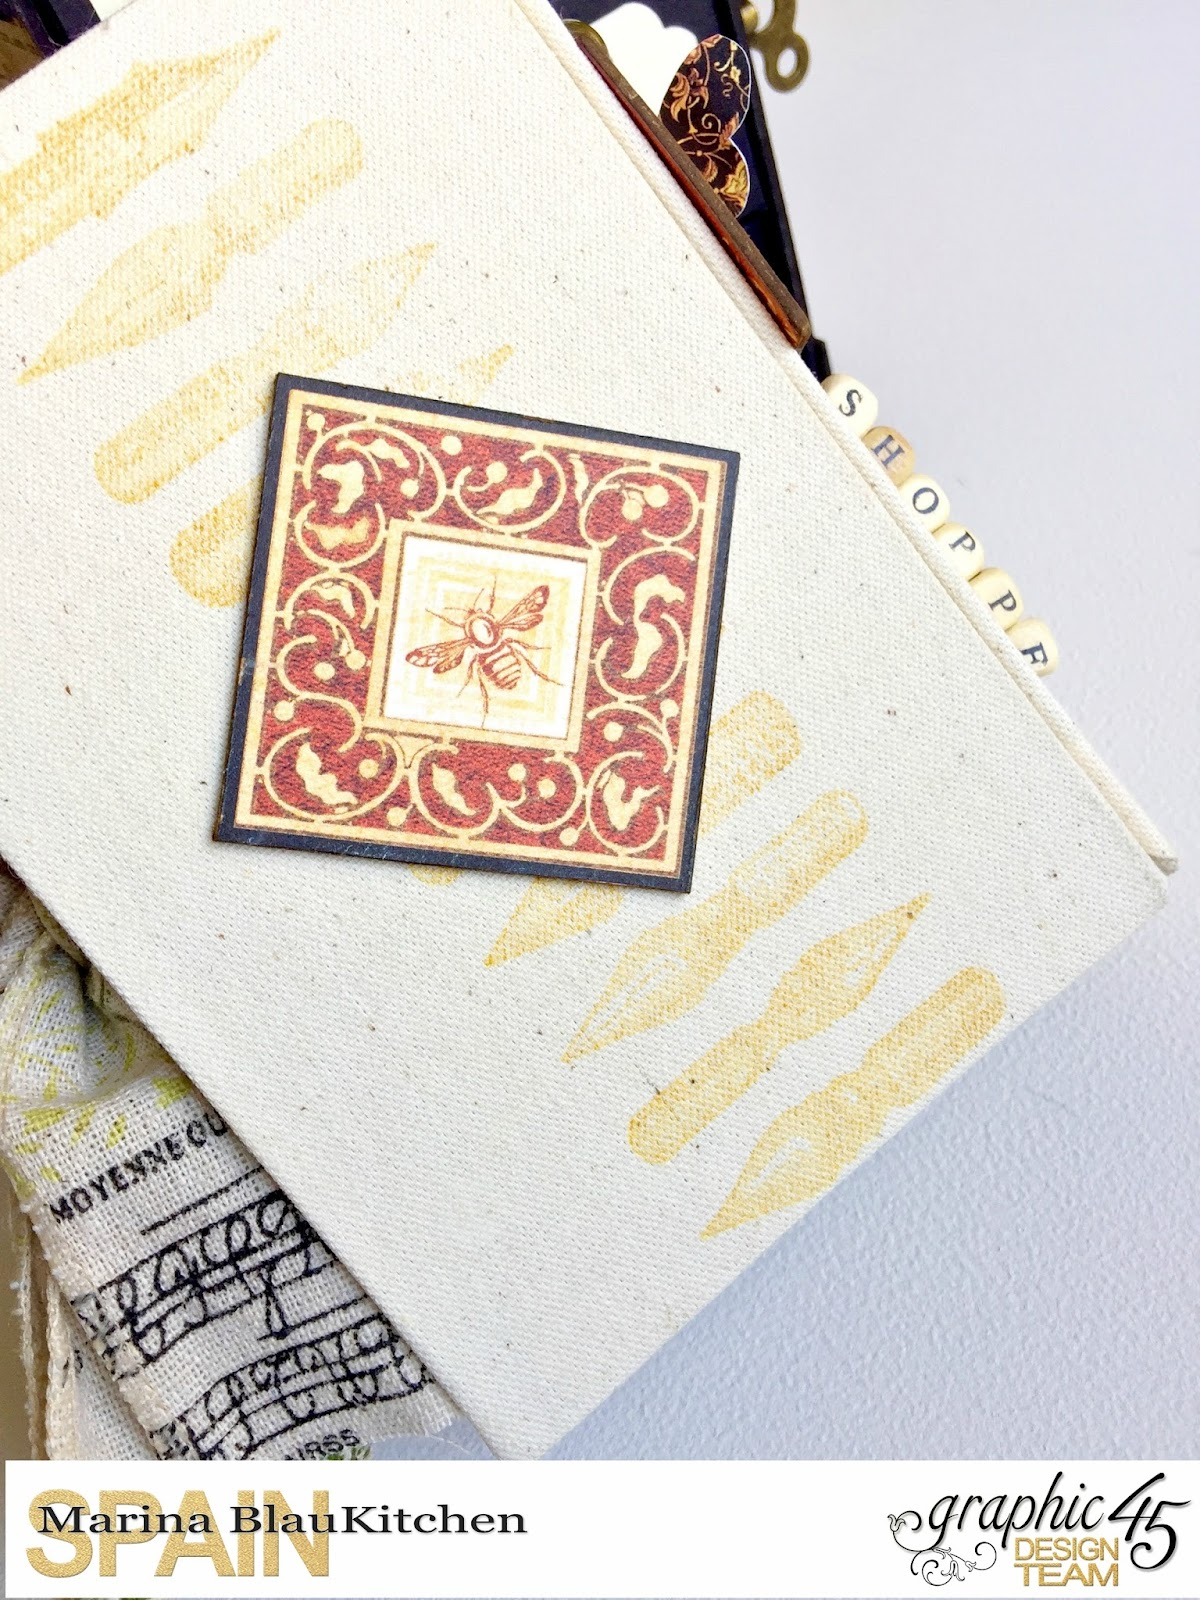 Album Binding Olde Curiosity Shoppe Tutorial by Marina Blaukitchen Product by Graphic 45 photo 14.jpg